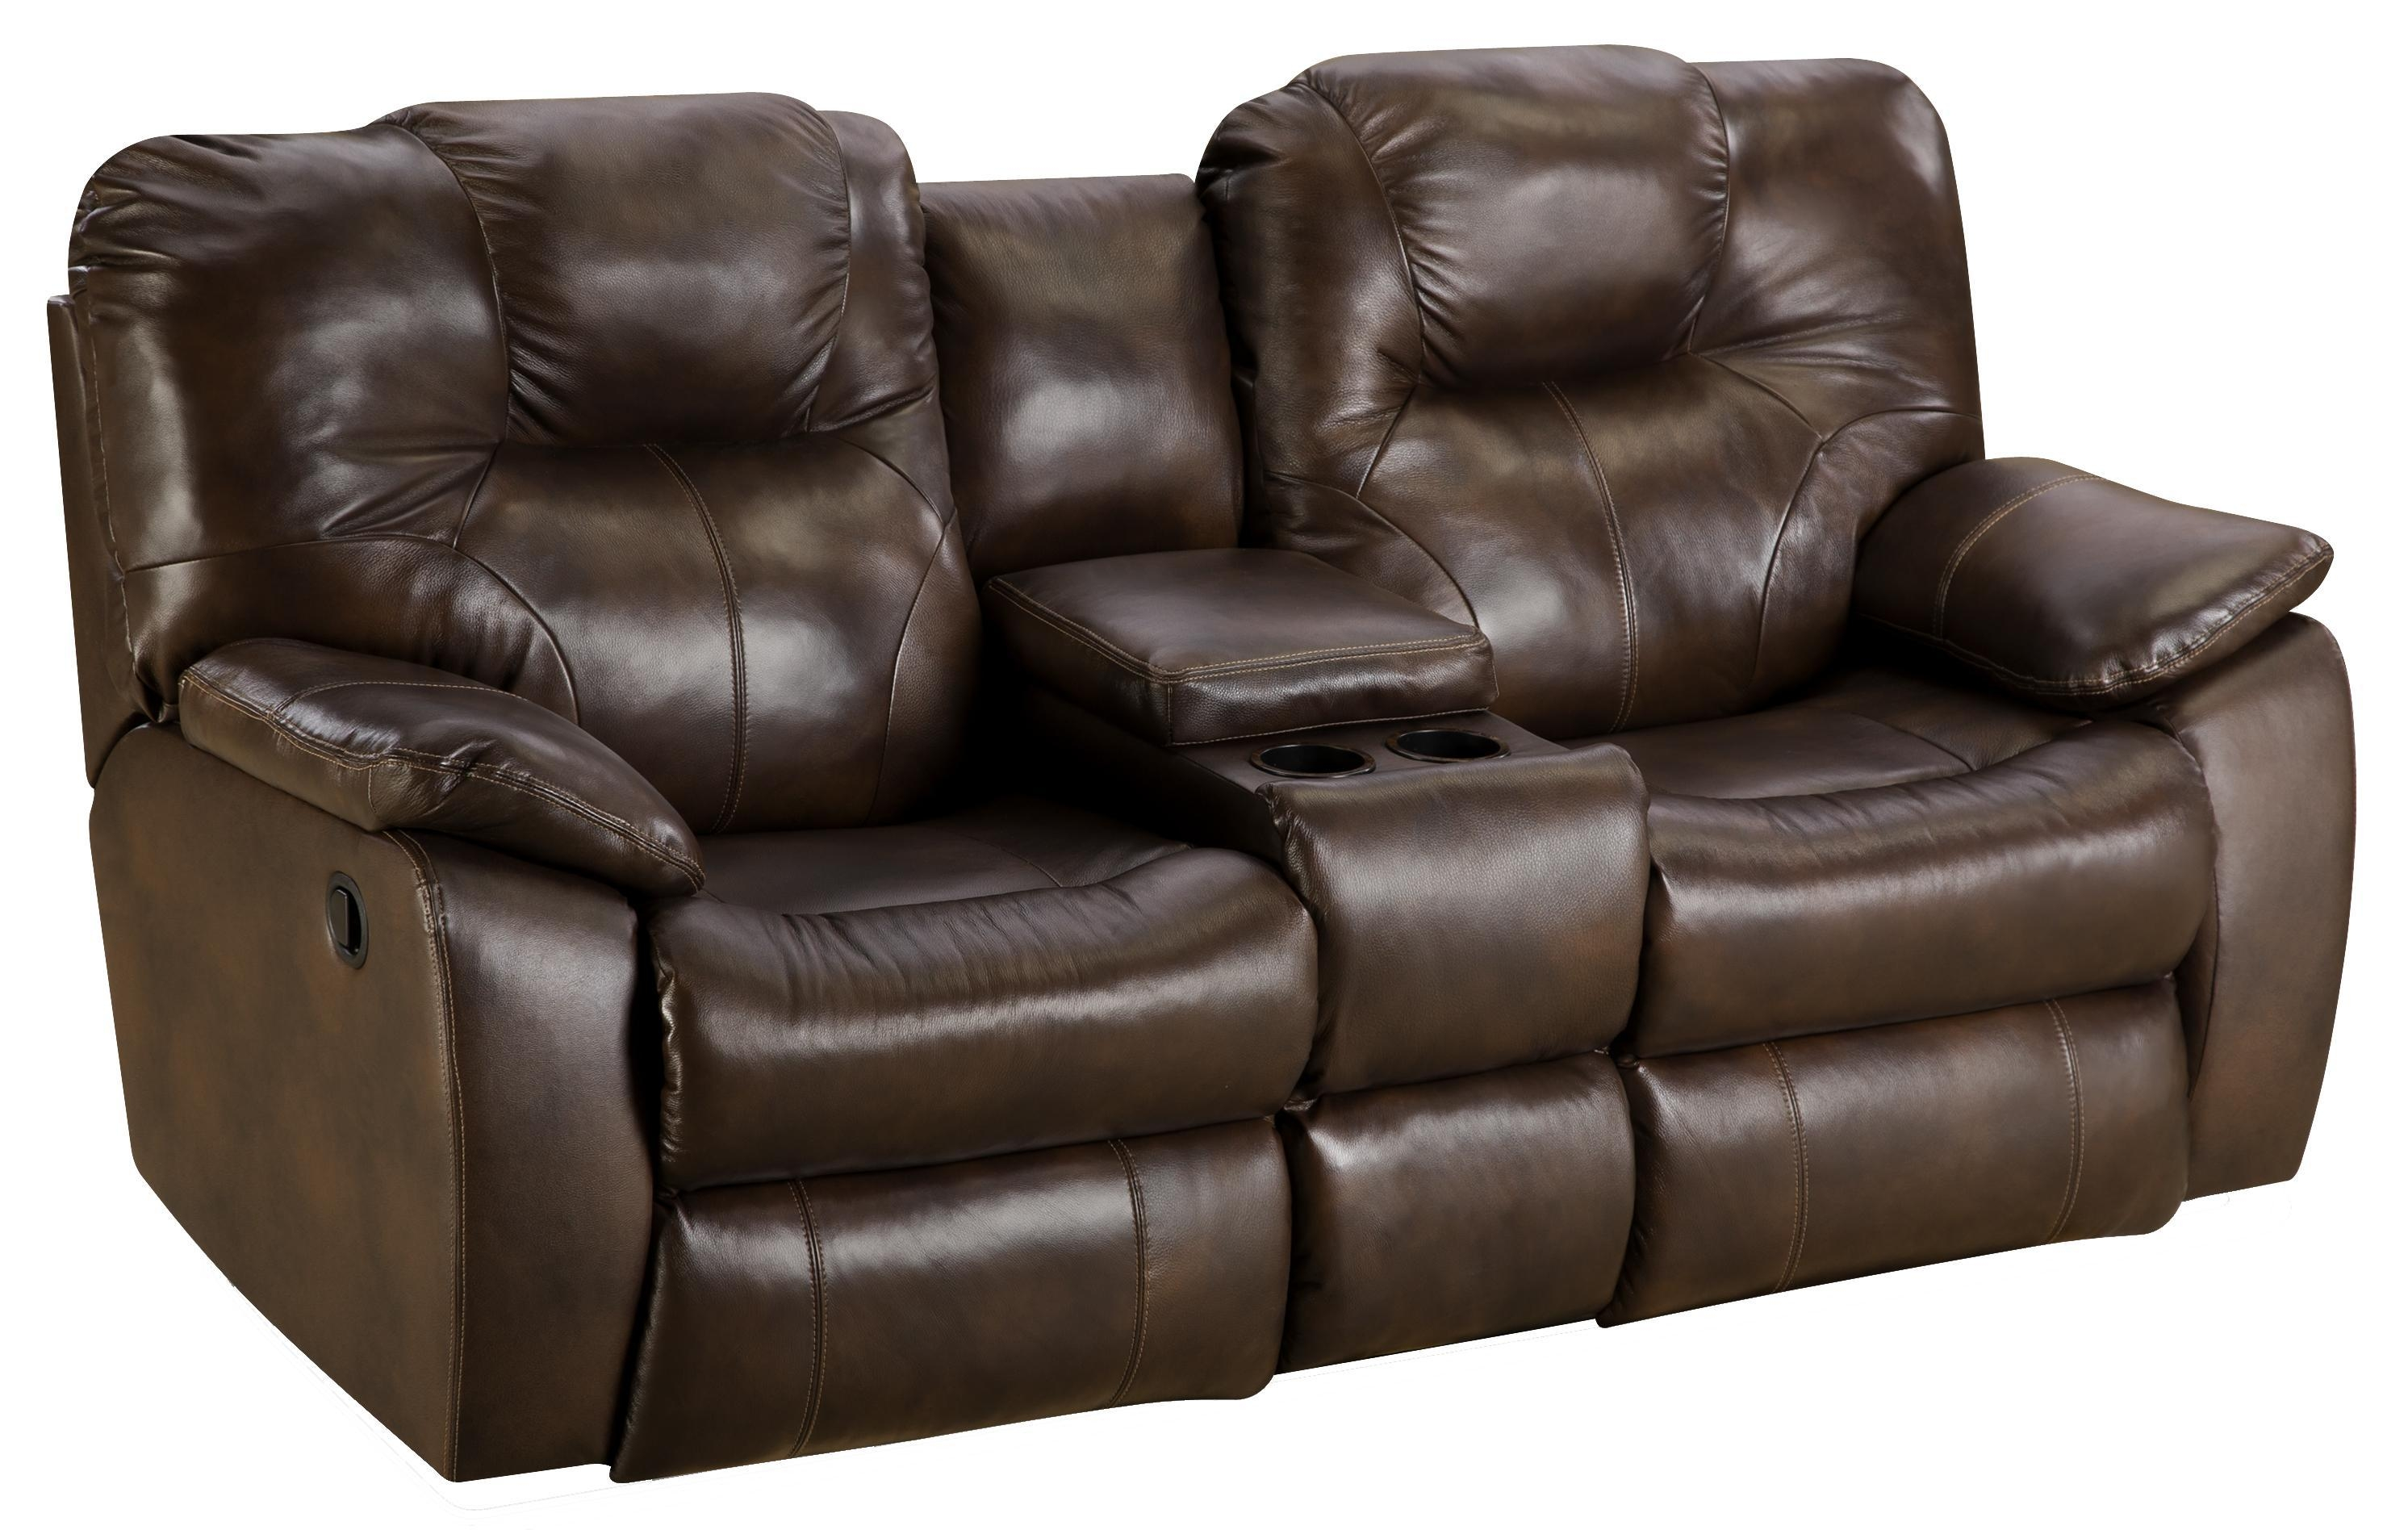 Double Recliner Sofa With Console Leather Cleaner Steam Clean Pertaining To Sofas With Console (View 10 of 20)